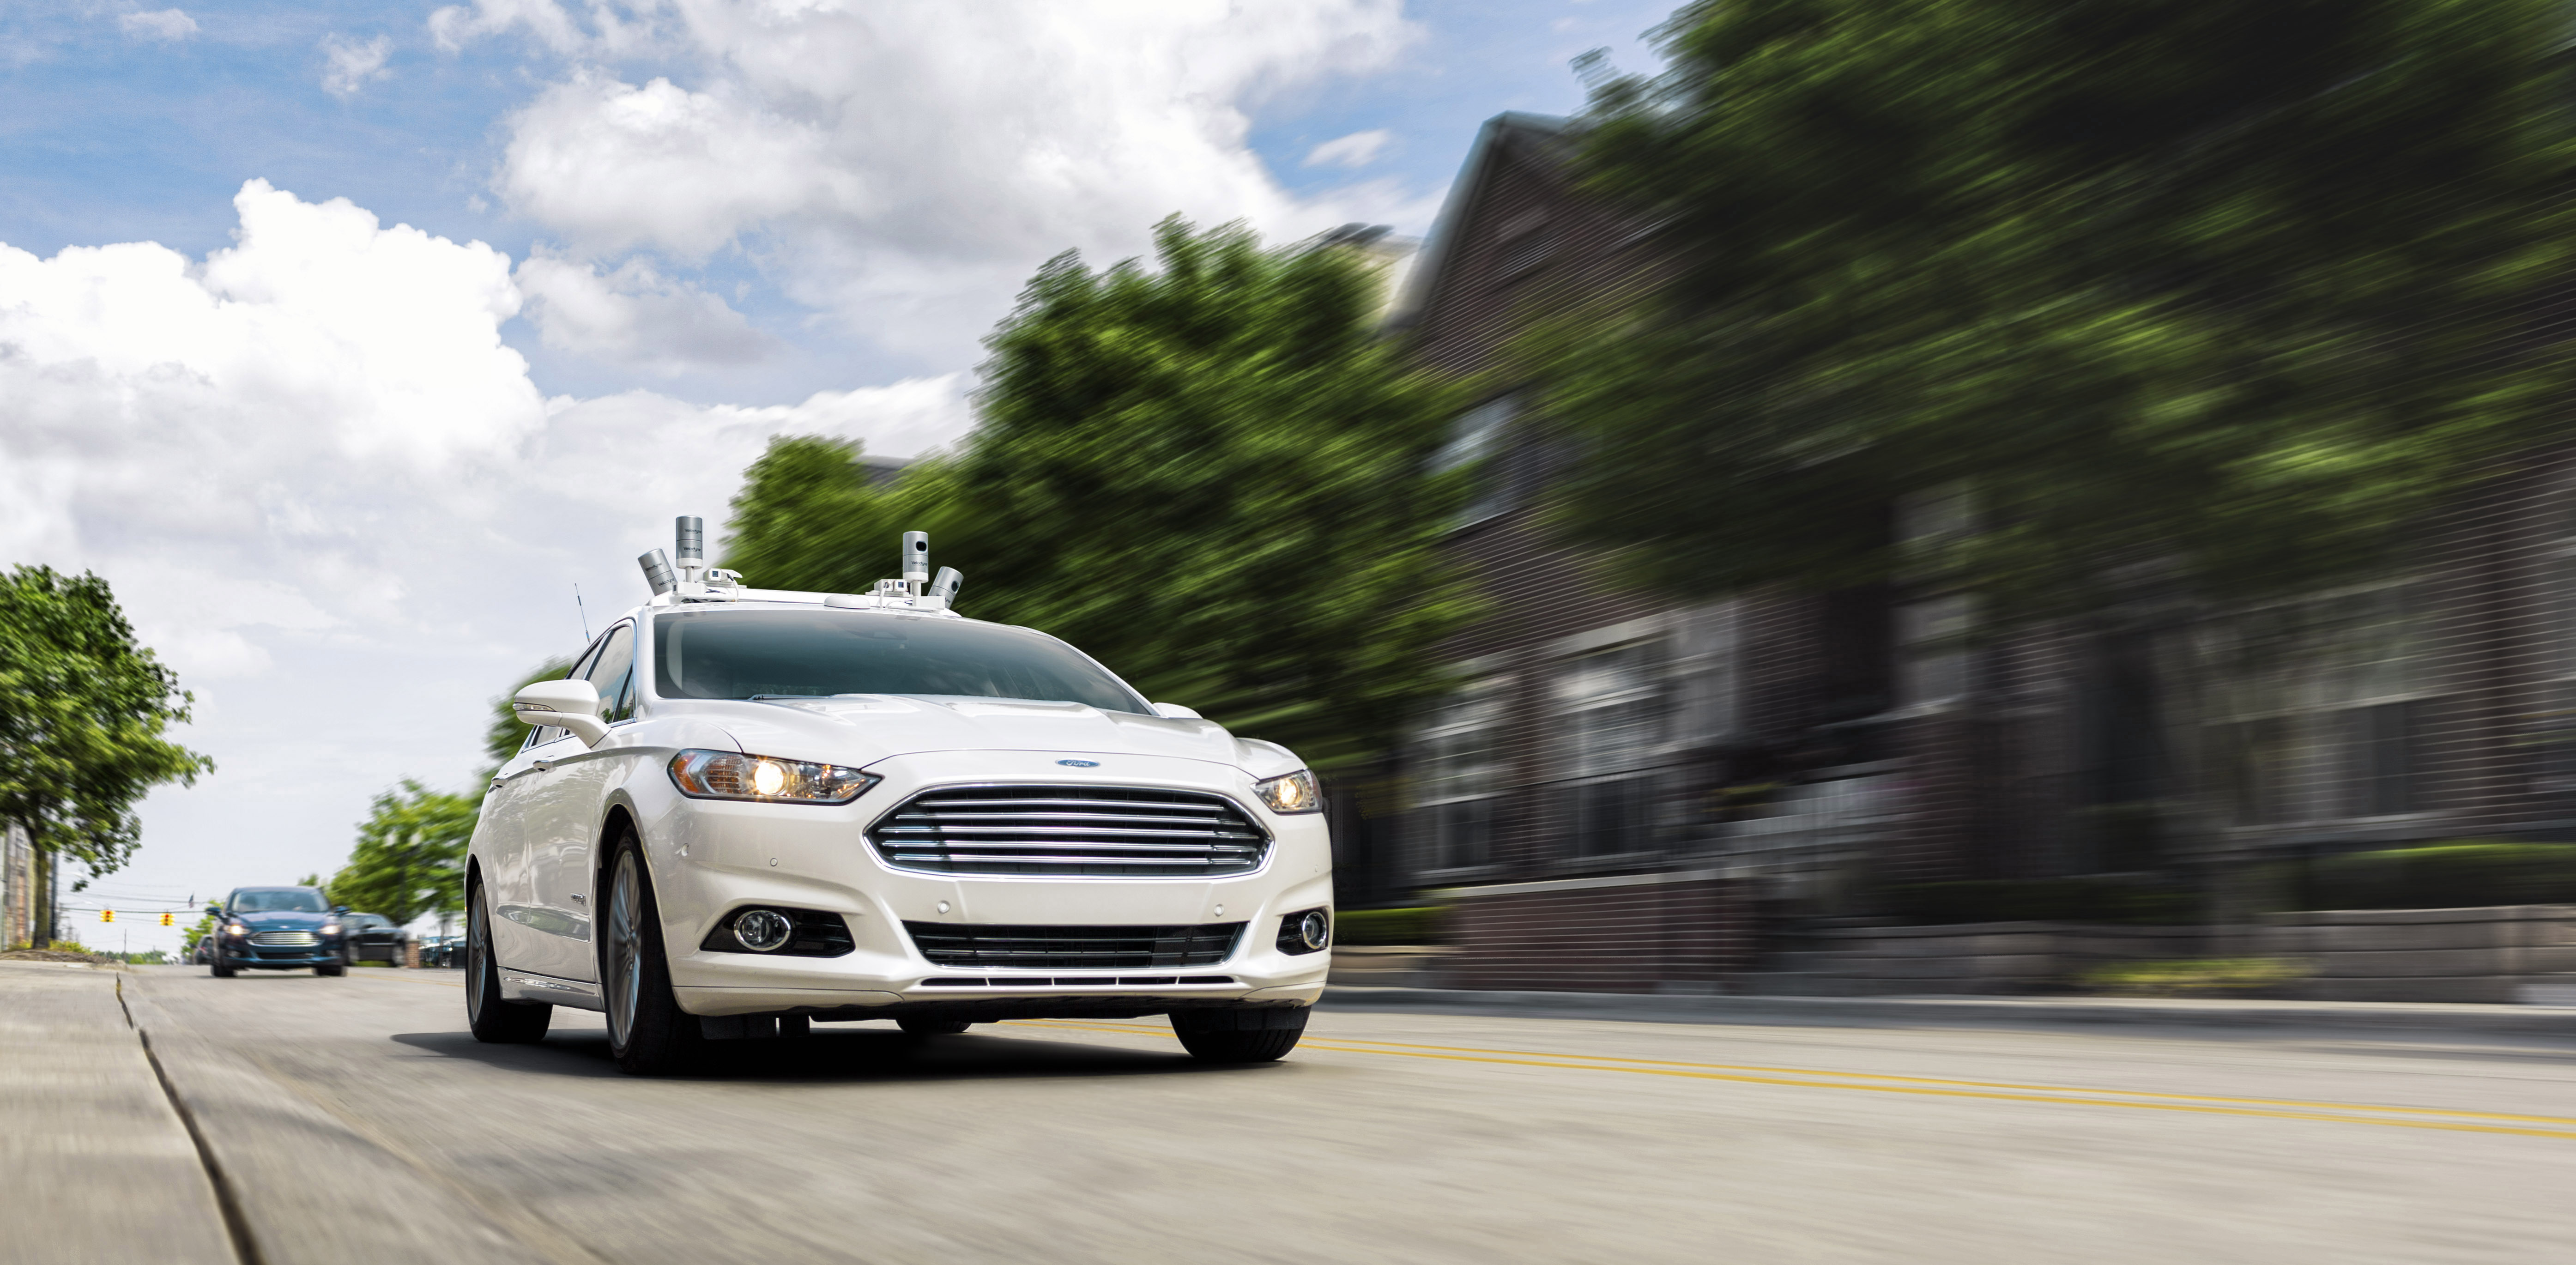 Ford is testing autonomous Fusion hybrids, and added 20 of the vehicles to its self-driving test fleet in 2016.